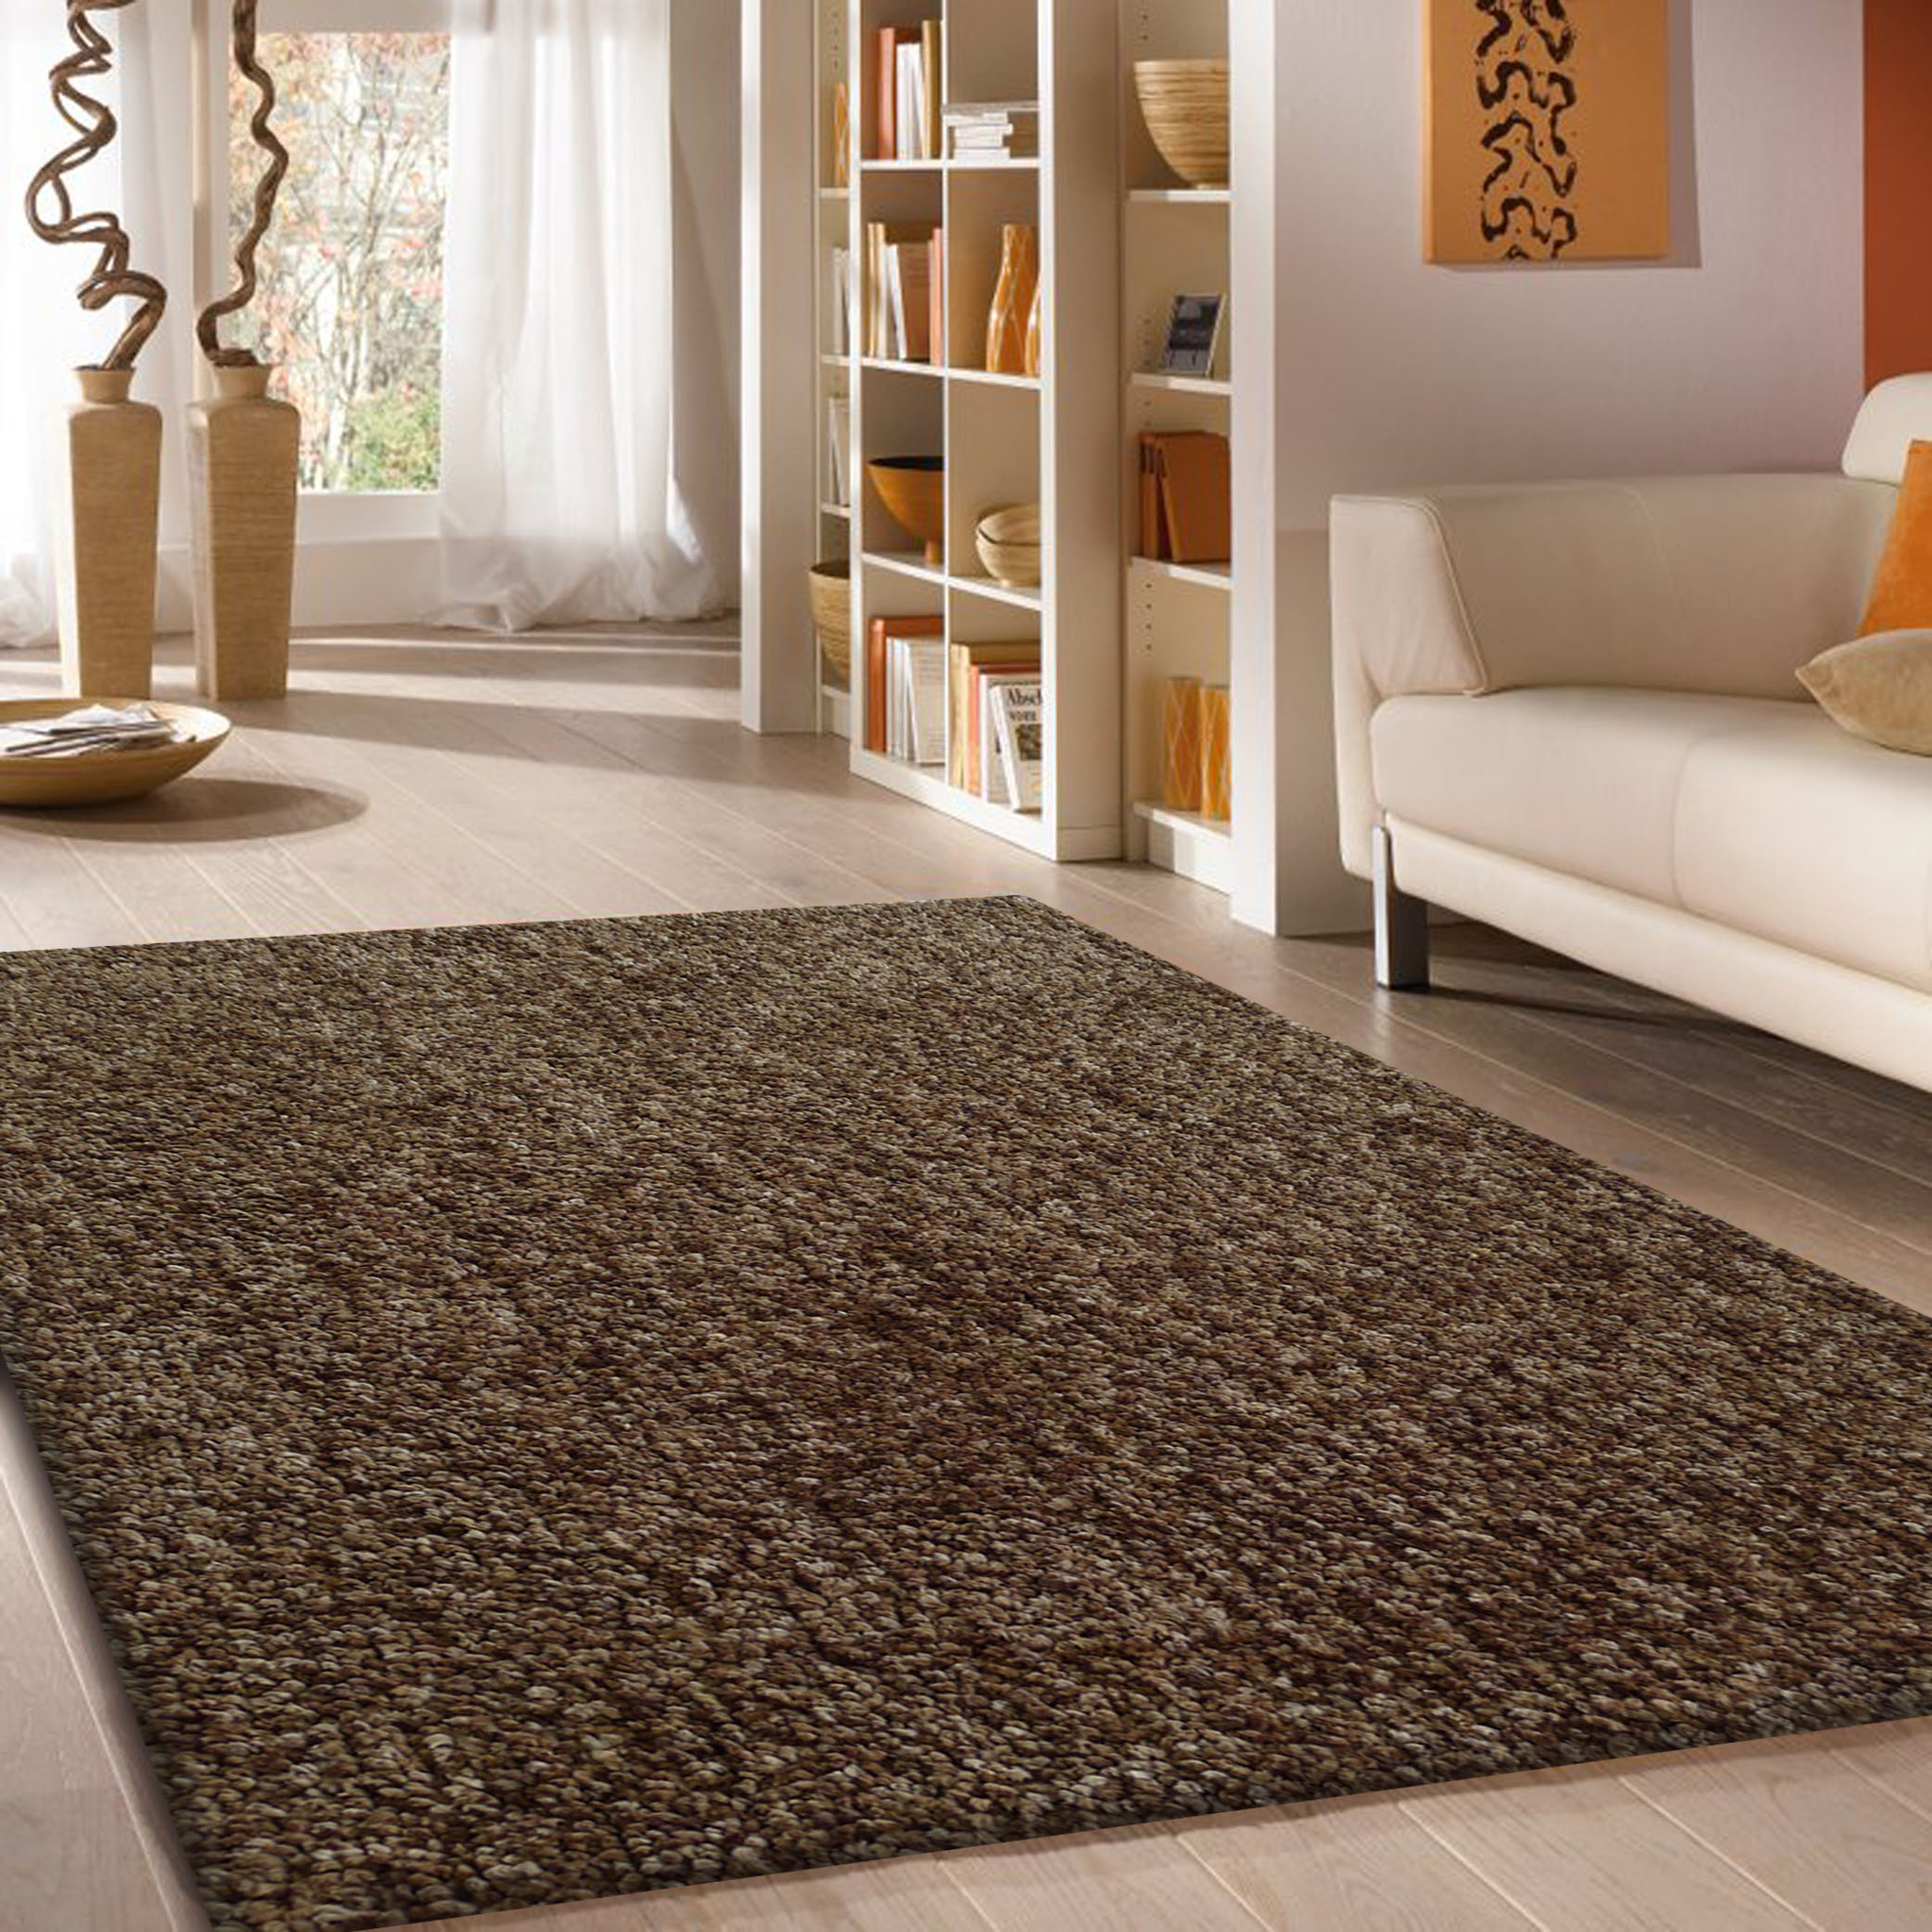 Design your house with Contemporary plush rugs